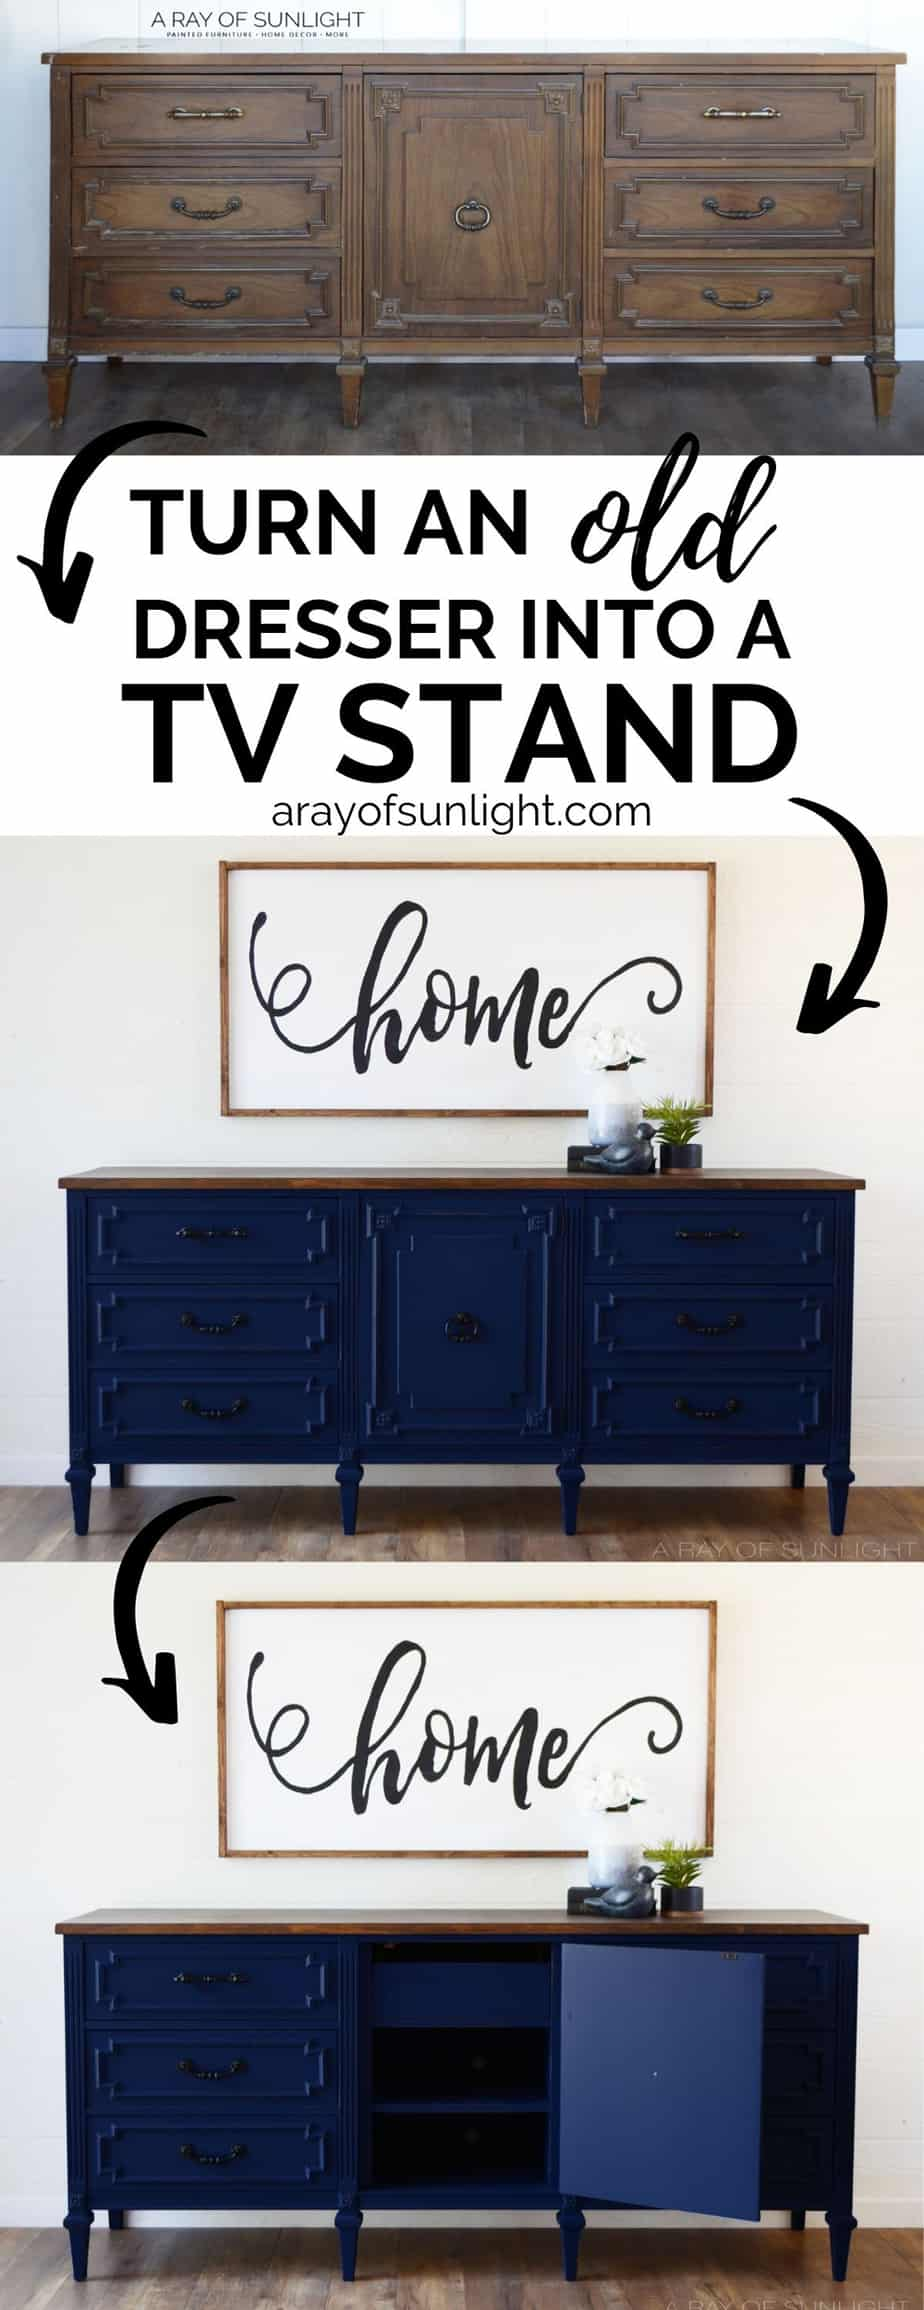 """Turn an old dresser into a tv stand"" infographic"